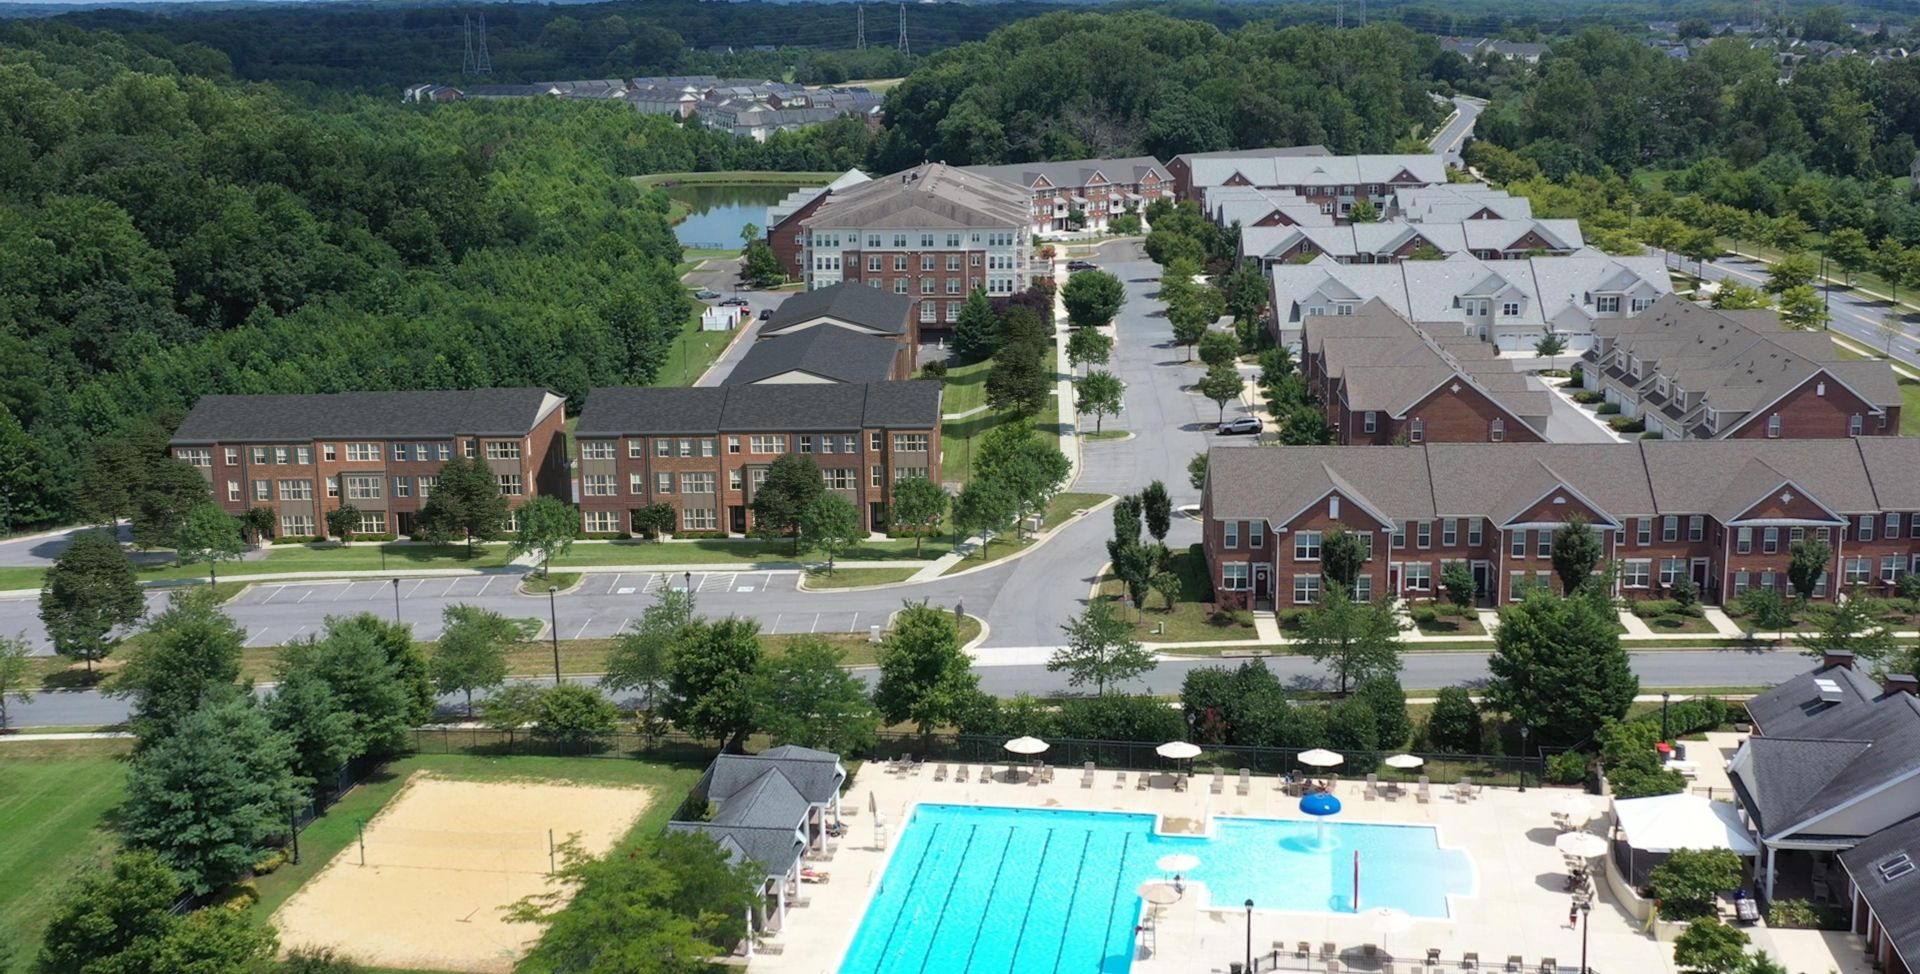 Aerial of Pool and Townhomes